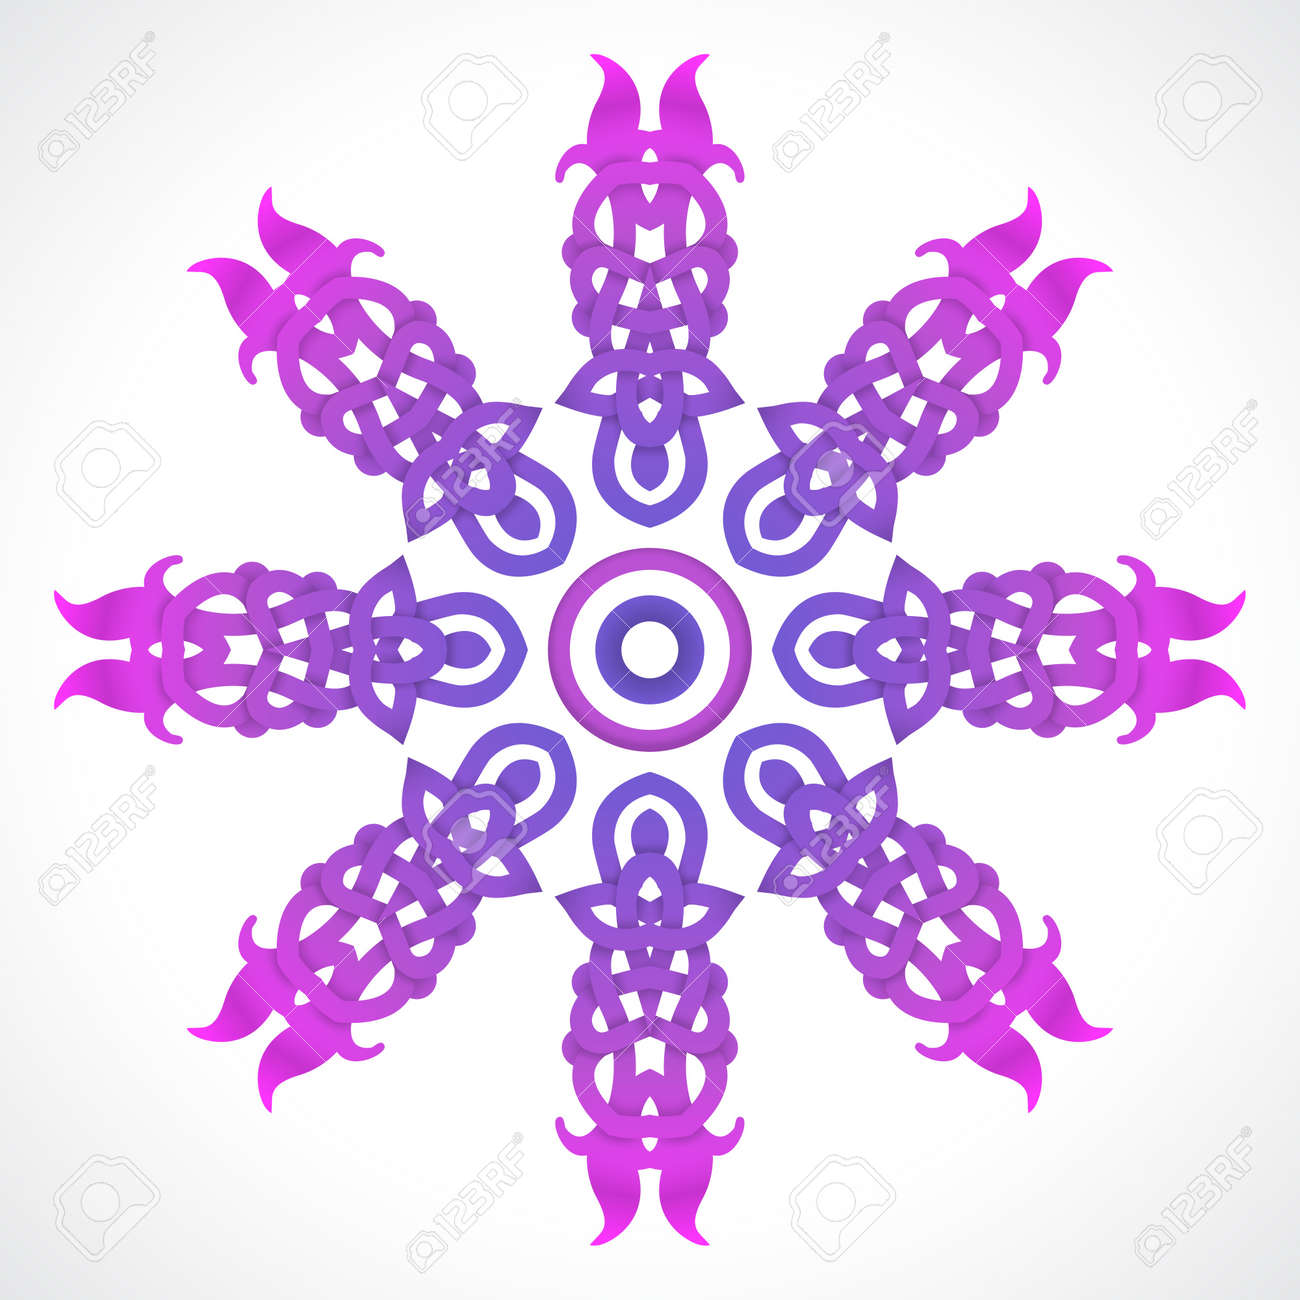 knotted violet round native ornament on white background Stock Vector - 21070958